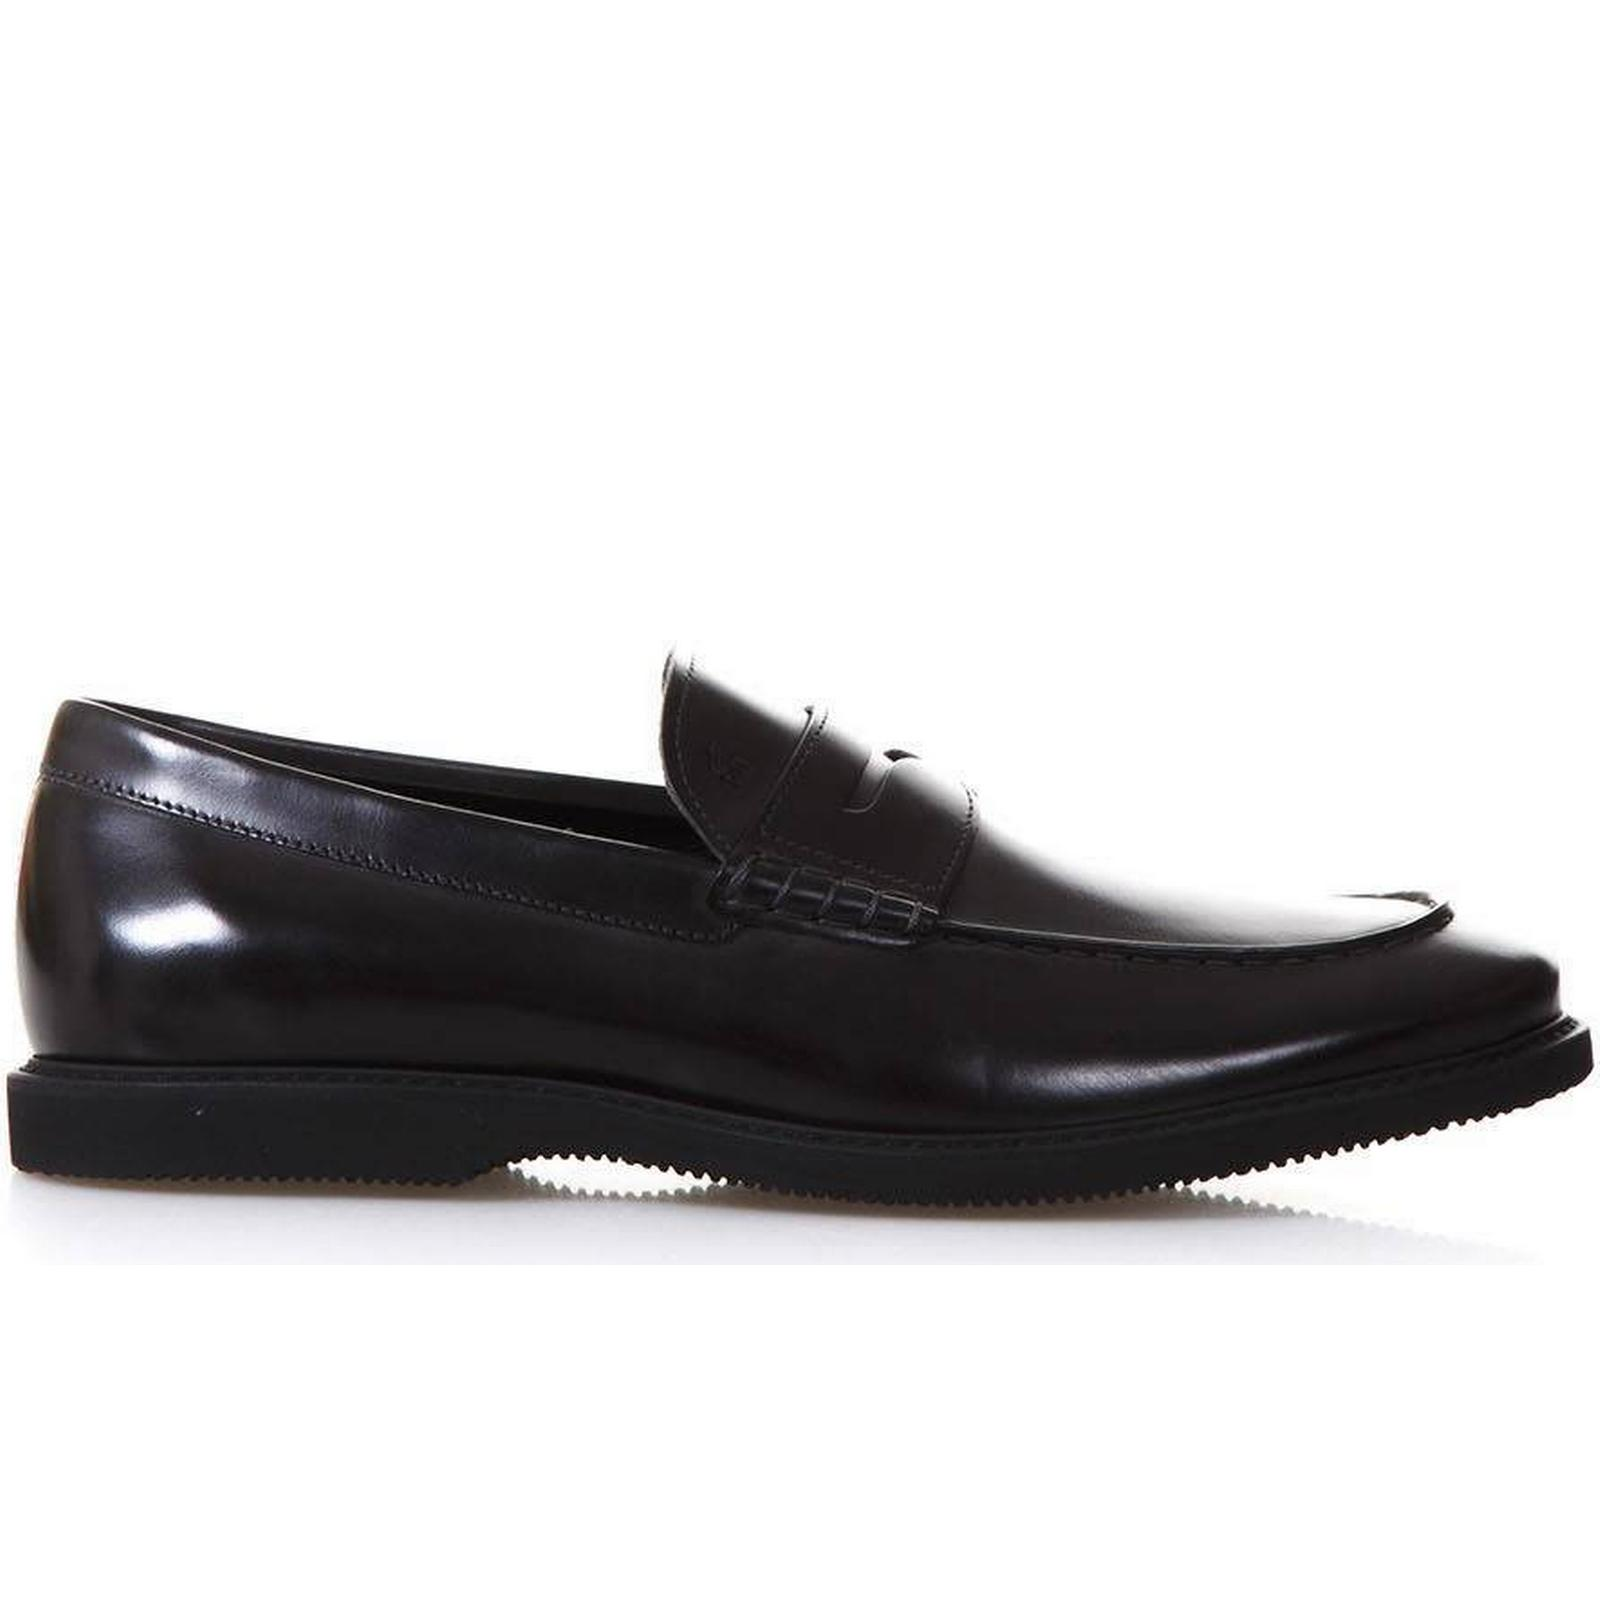 Hogan Black Leather Route Route Route Loafers 13976e